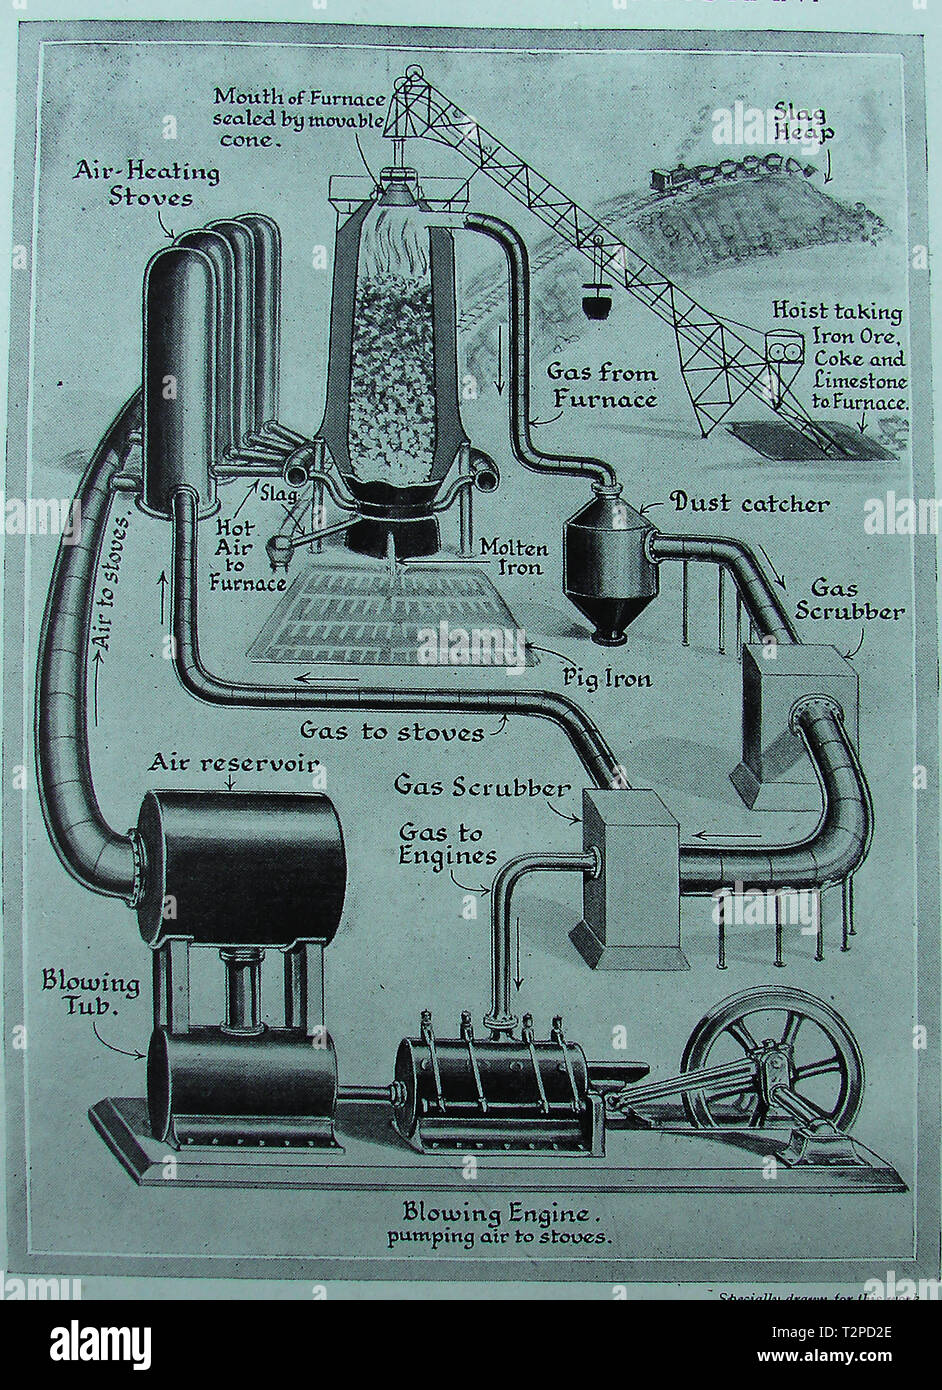 A 1940's pictorial diagram of the workings of a British blast furnace and its vaious processes - Stock Image